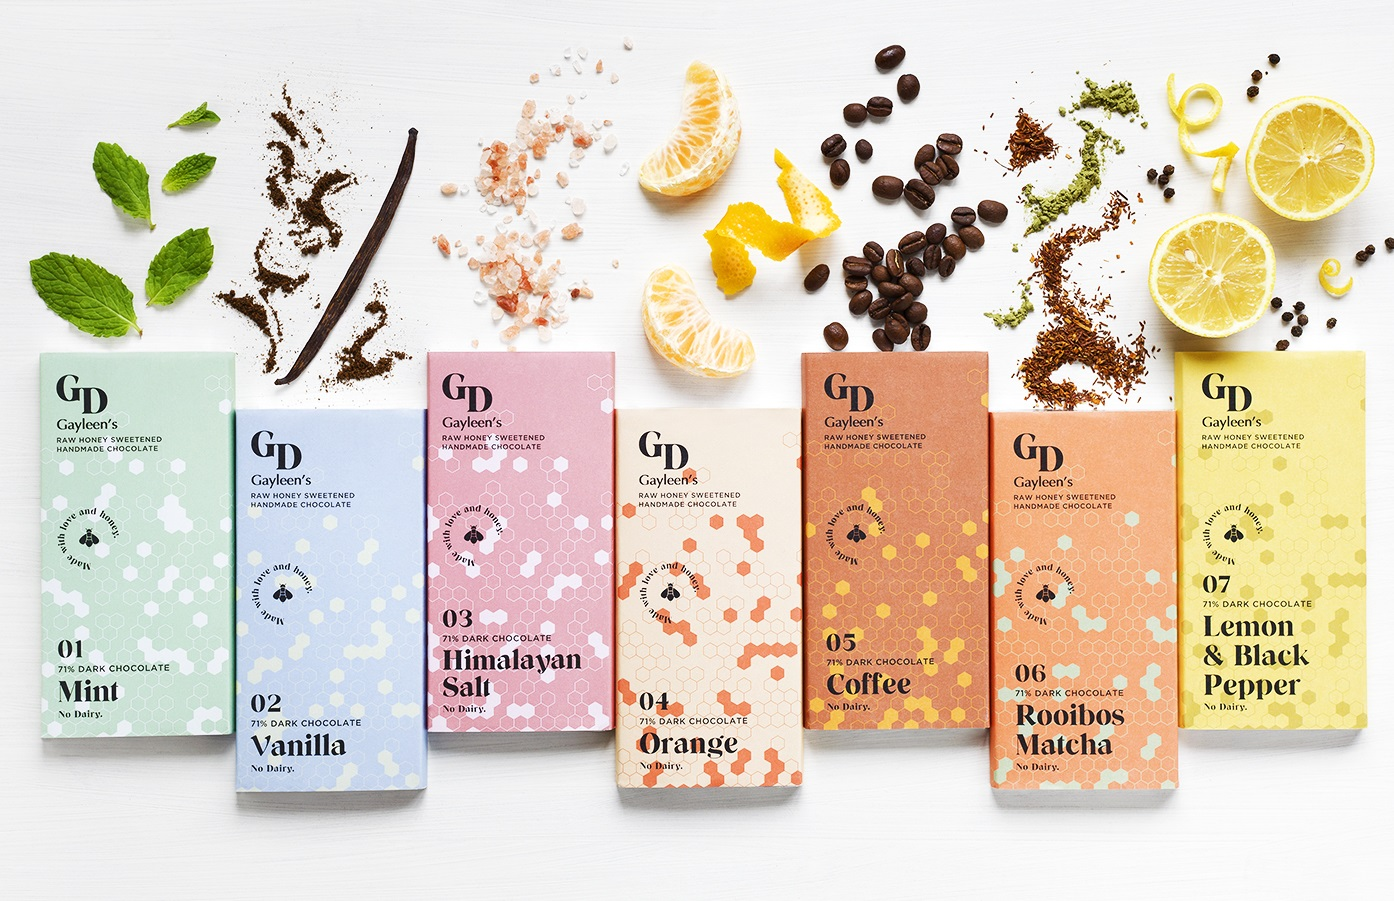 GD Chocolate – Guilt Free Gourmet Chocolate {PRESS RELEASE}